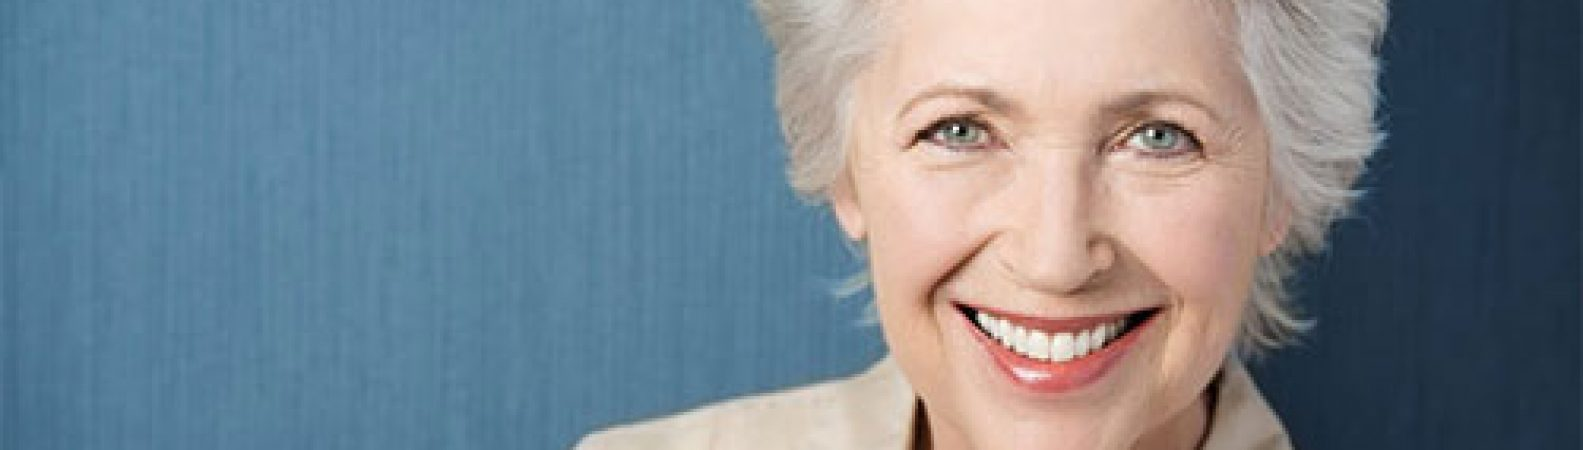 Are Dentures Giving You All That You Need?